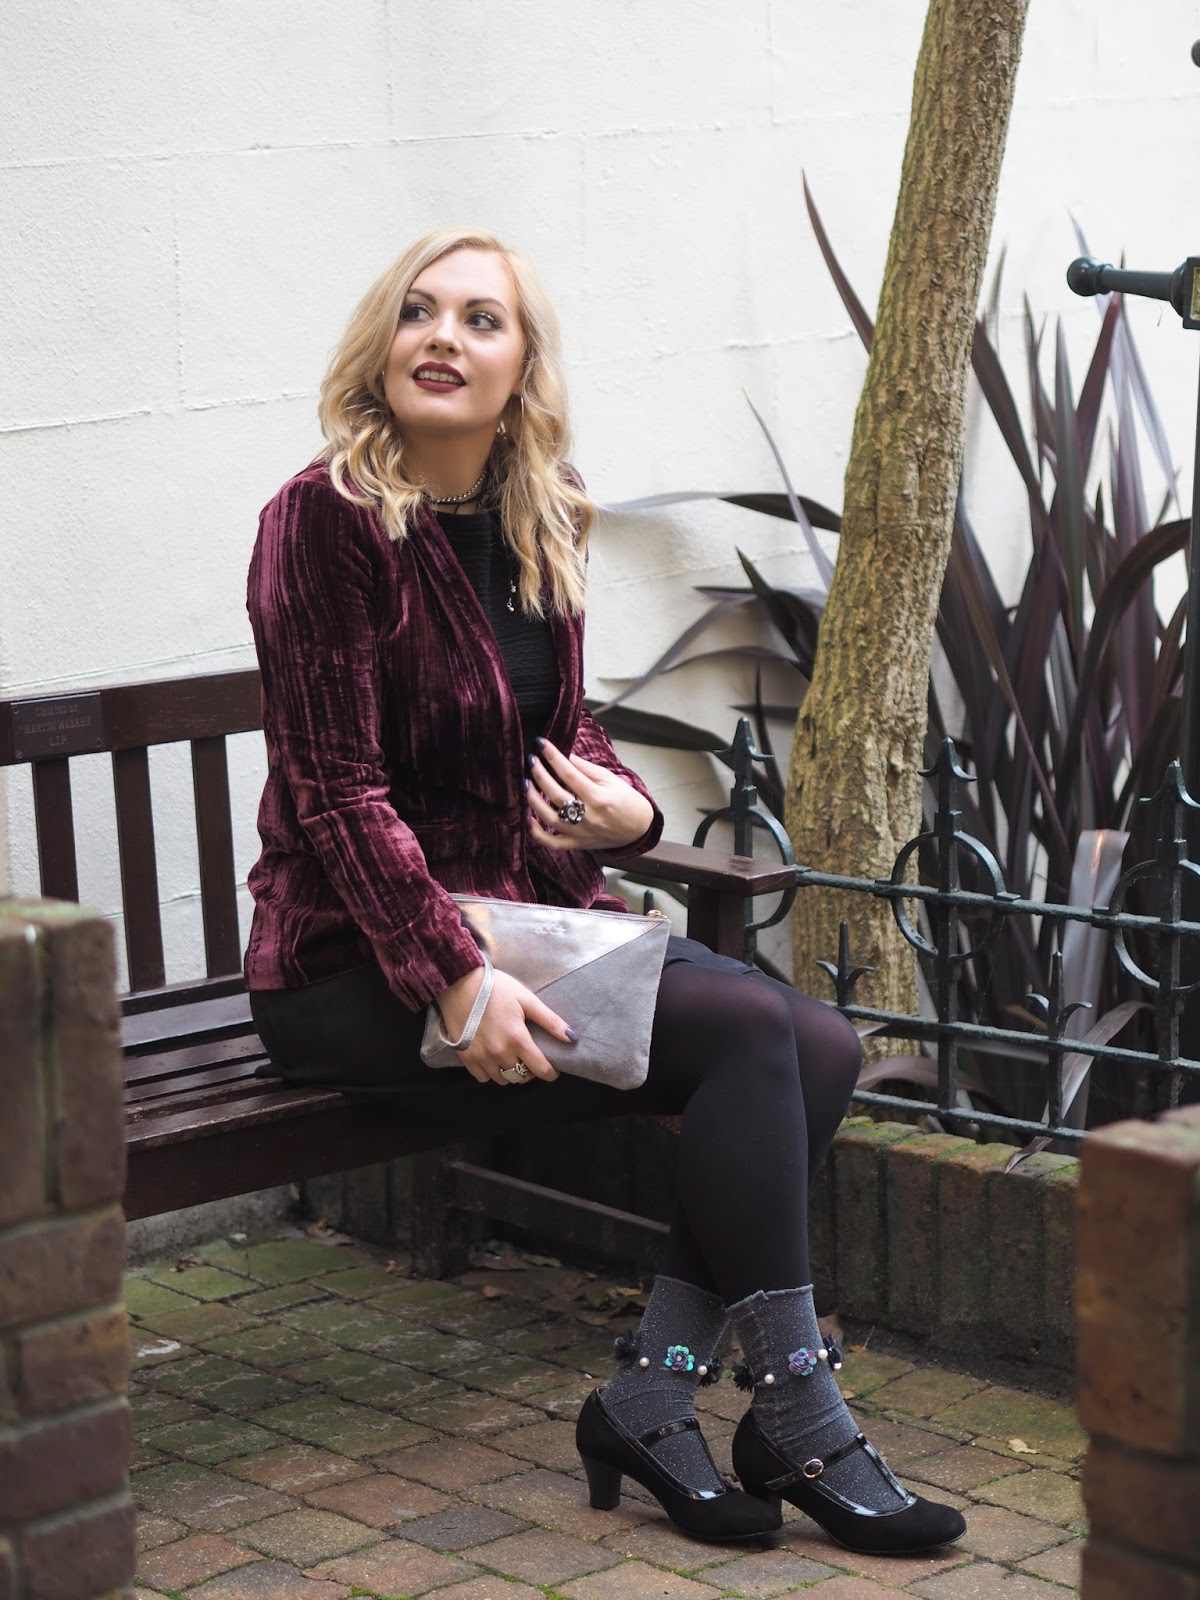 ''Tis The Season For Partywear, Katie Kirk Loves, UK Blogger, Fashion Blogger, Fashion Influencer, Style Blogger, Style Influencer, Outfit Ideas, Outfit Post, Party Outfits, Party Outfit Ideas, New Years Eve Outfits, Oasis Fashion, Giveaway, Competition